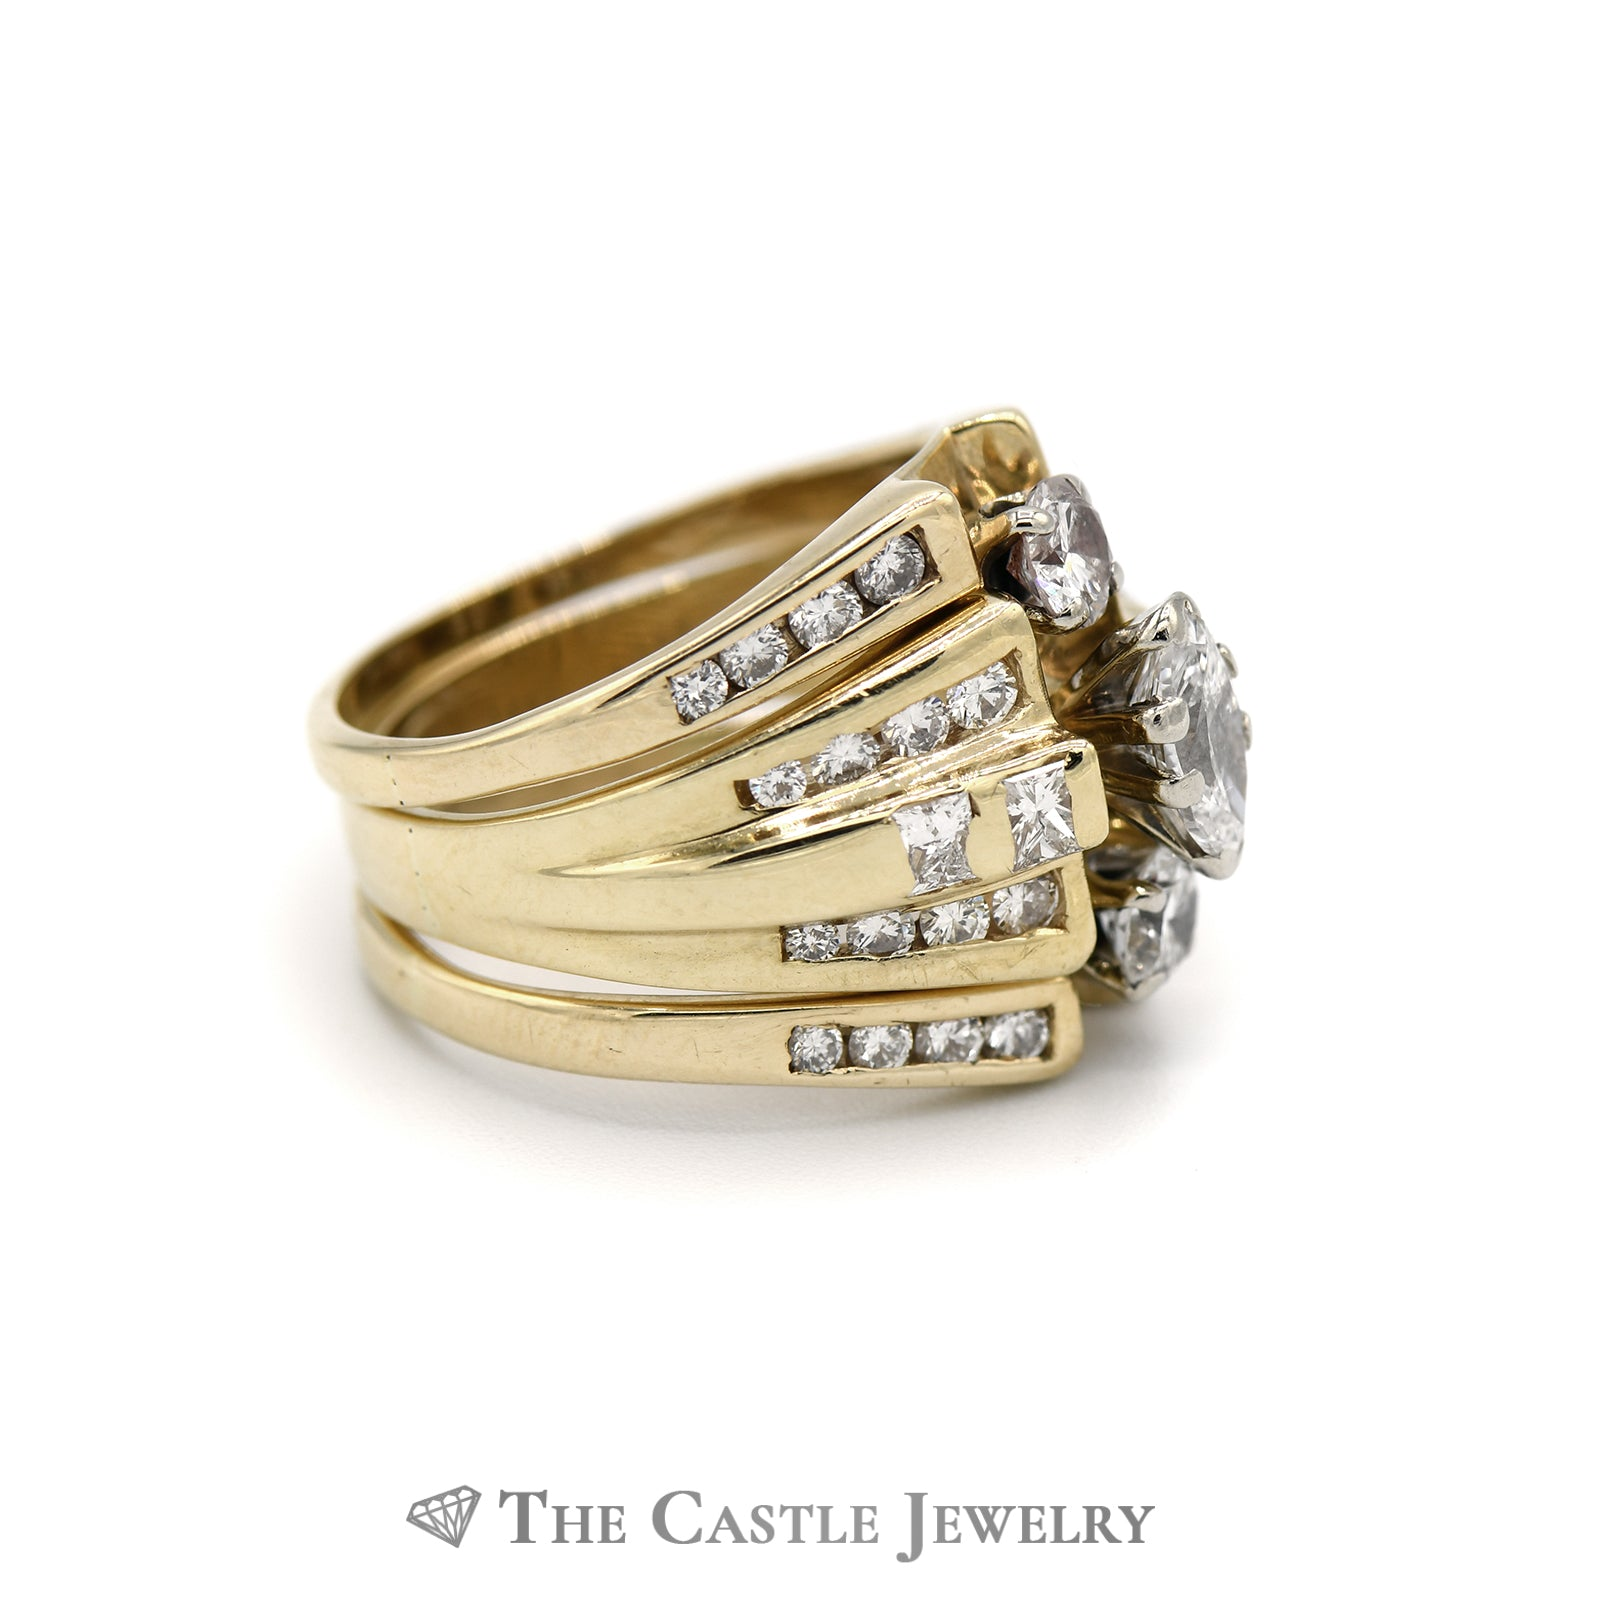 Unique 2cttw Diamond Bridal Set Crafted in 14K Yellow Gold-2